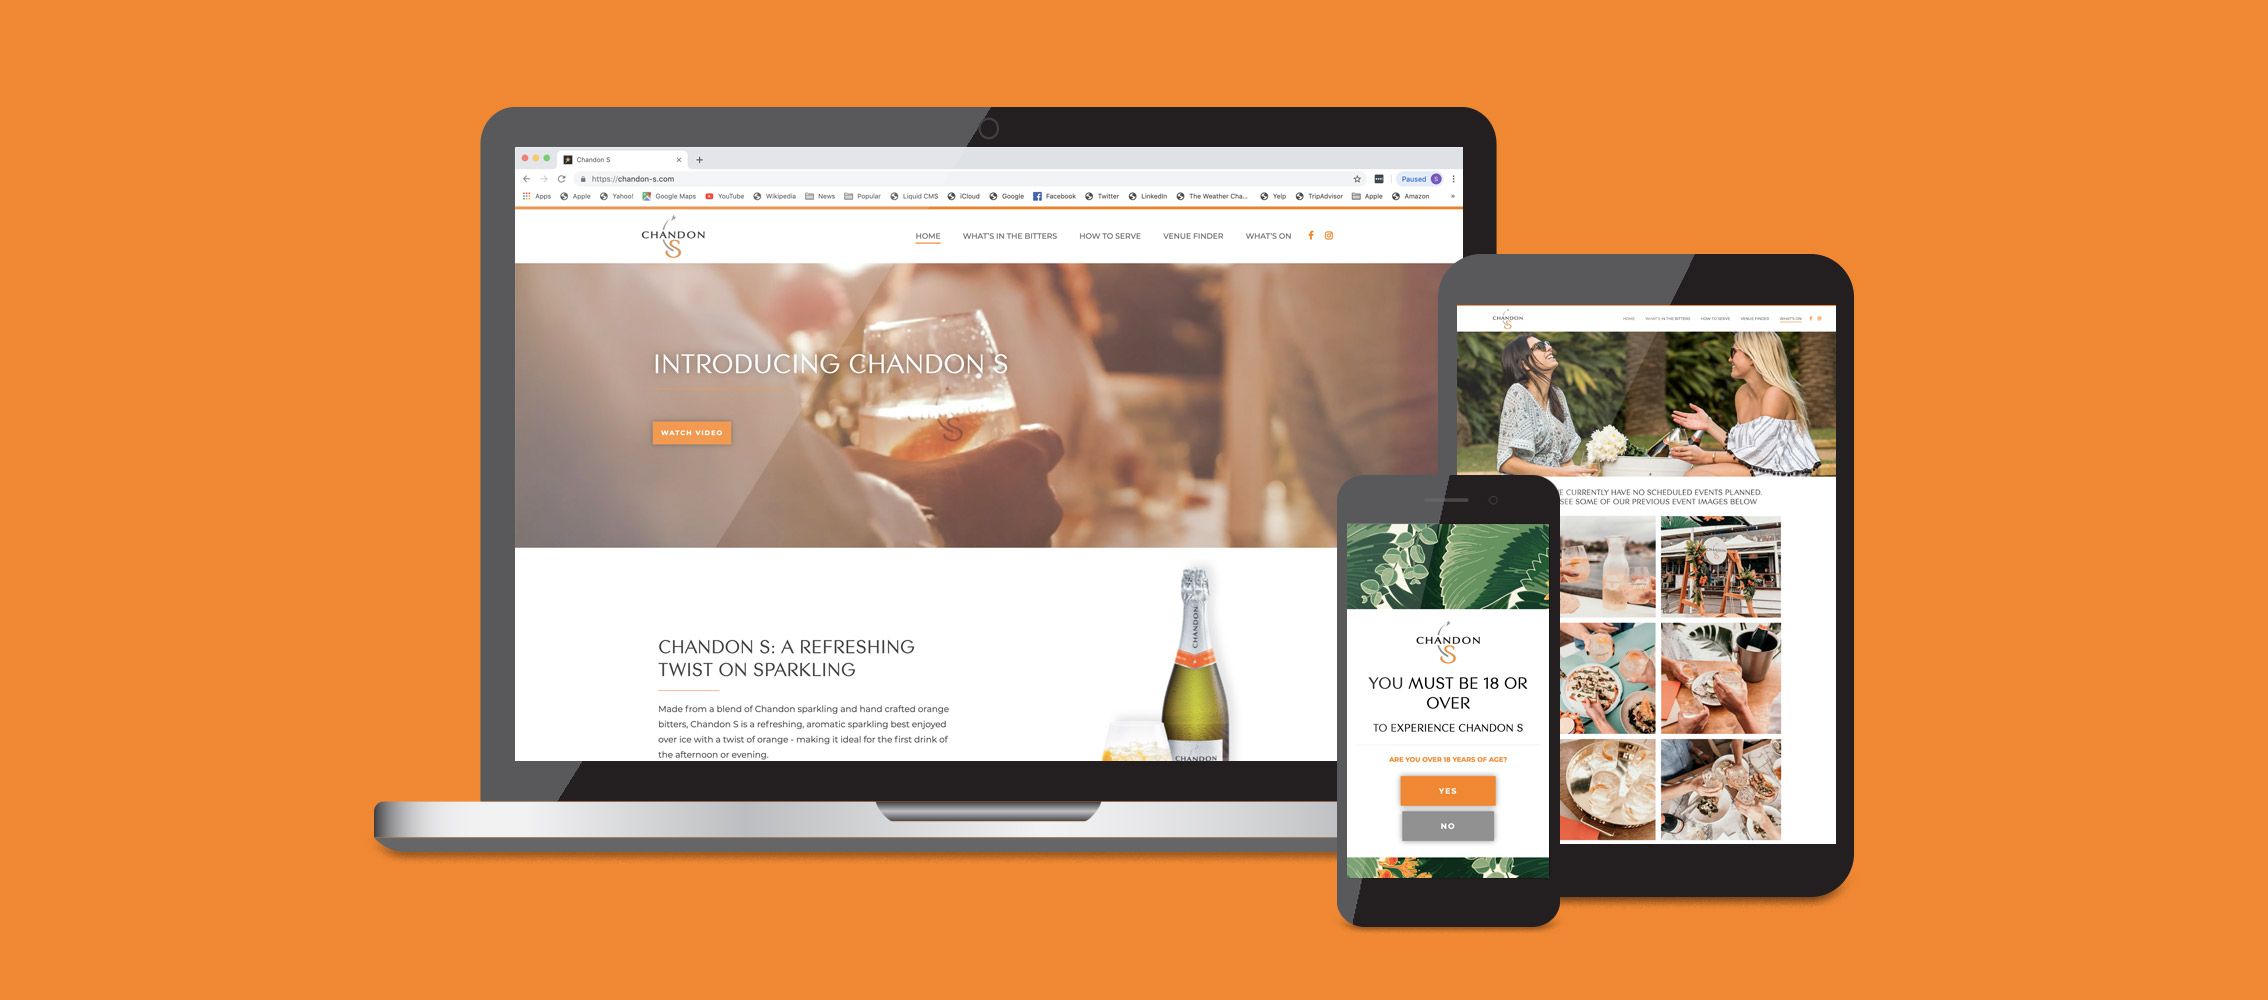 Chandon S Website Design